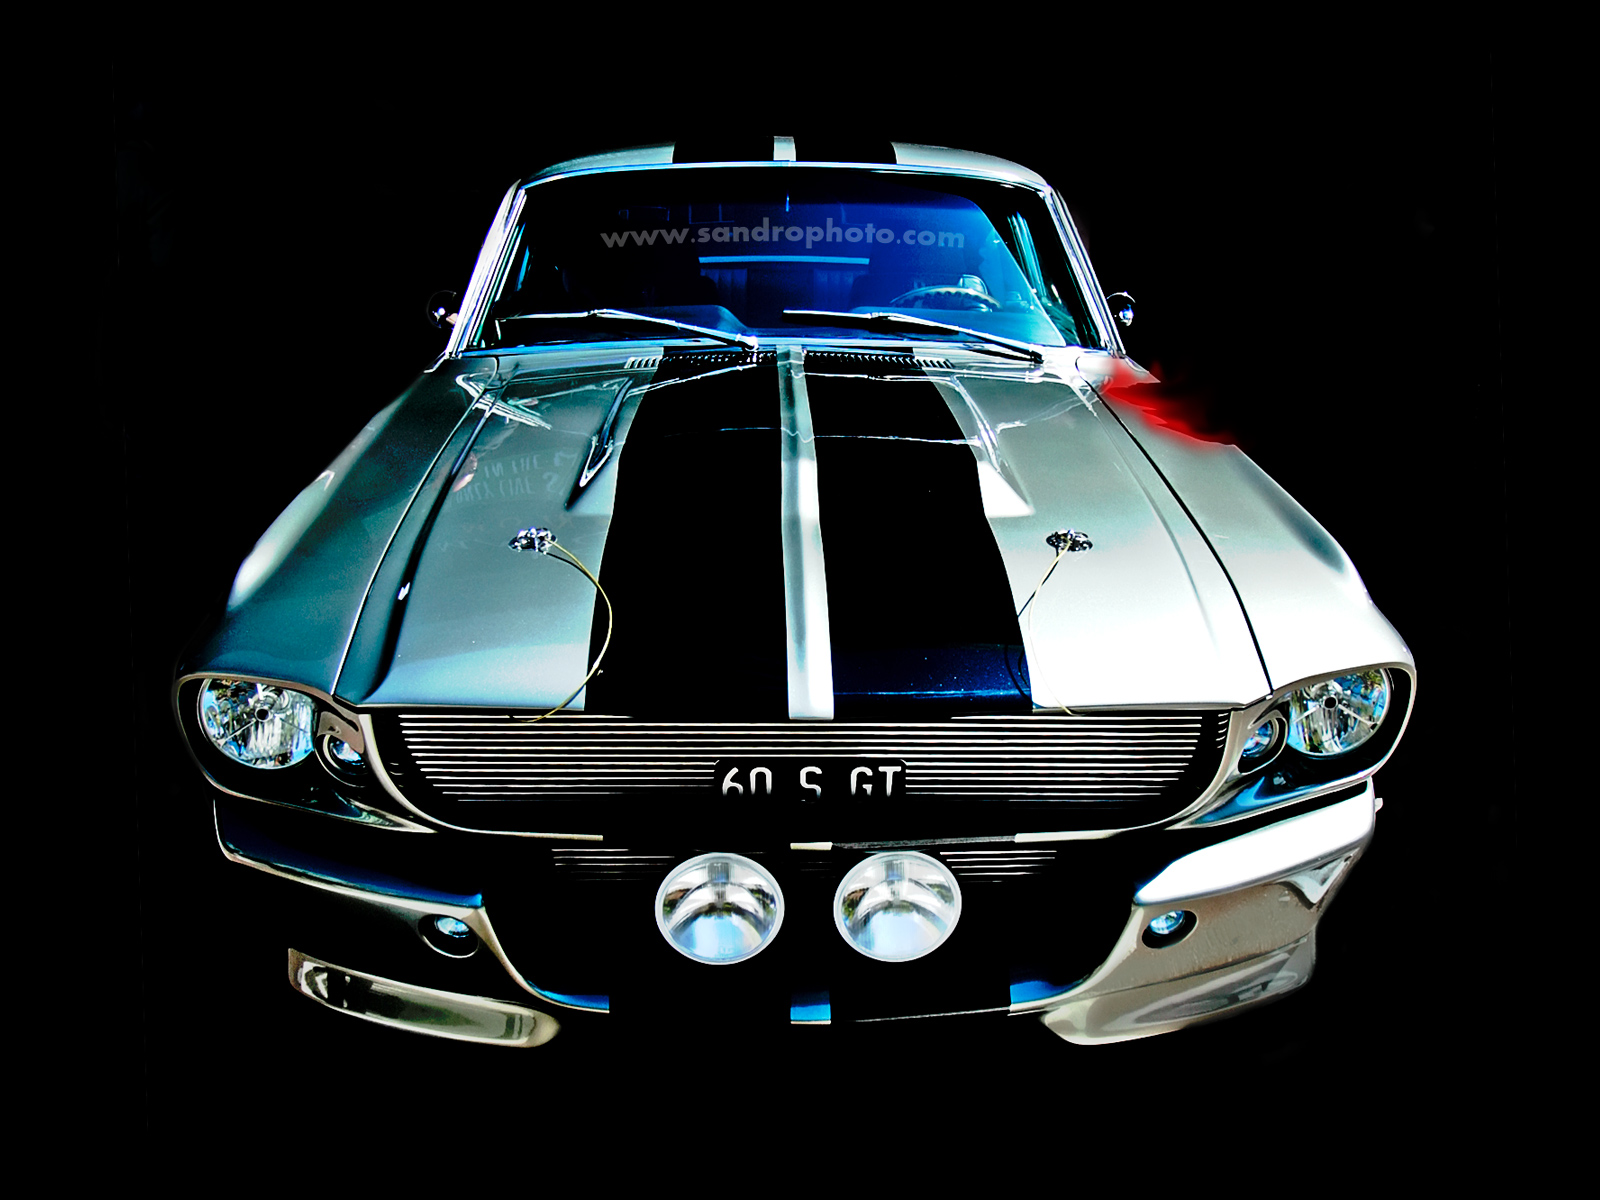 hd muscle car wallpapers hd muscle car wallpapers hd muscle car 1600x1200